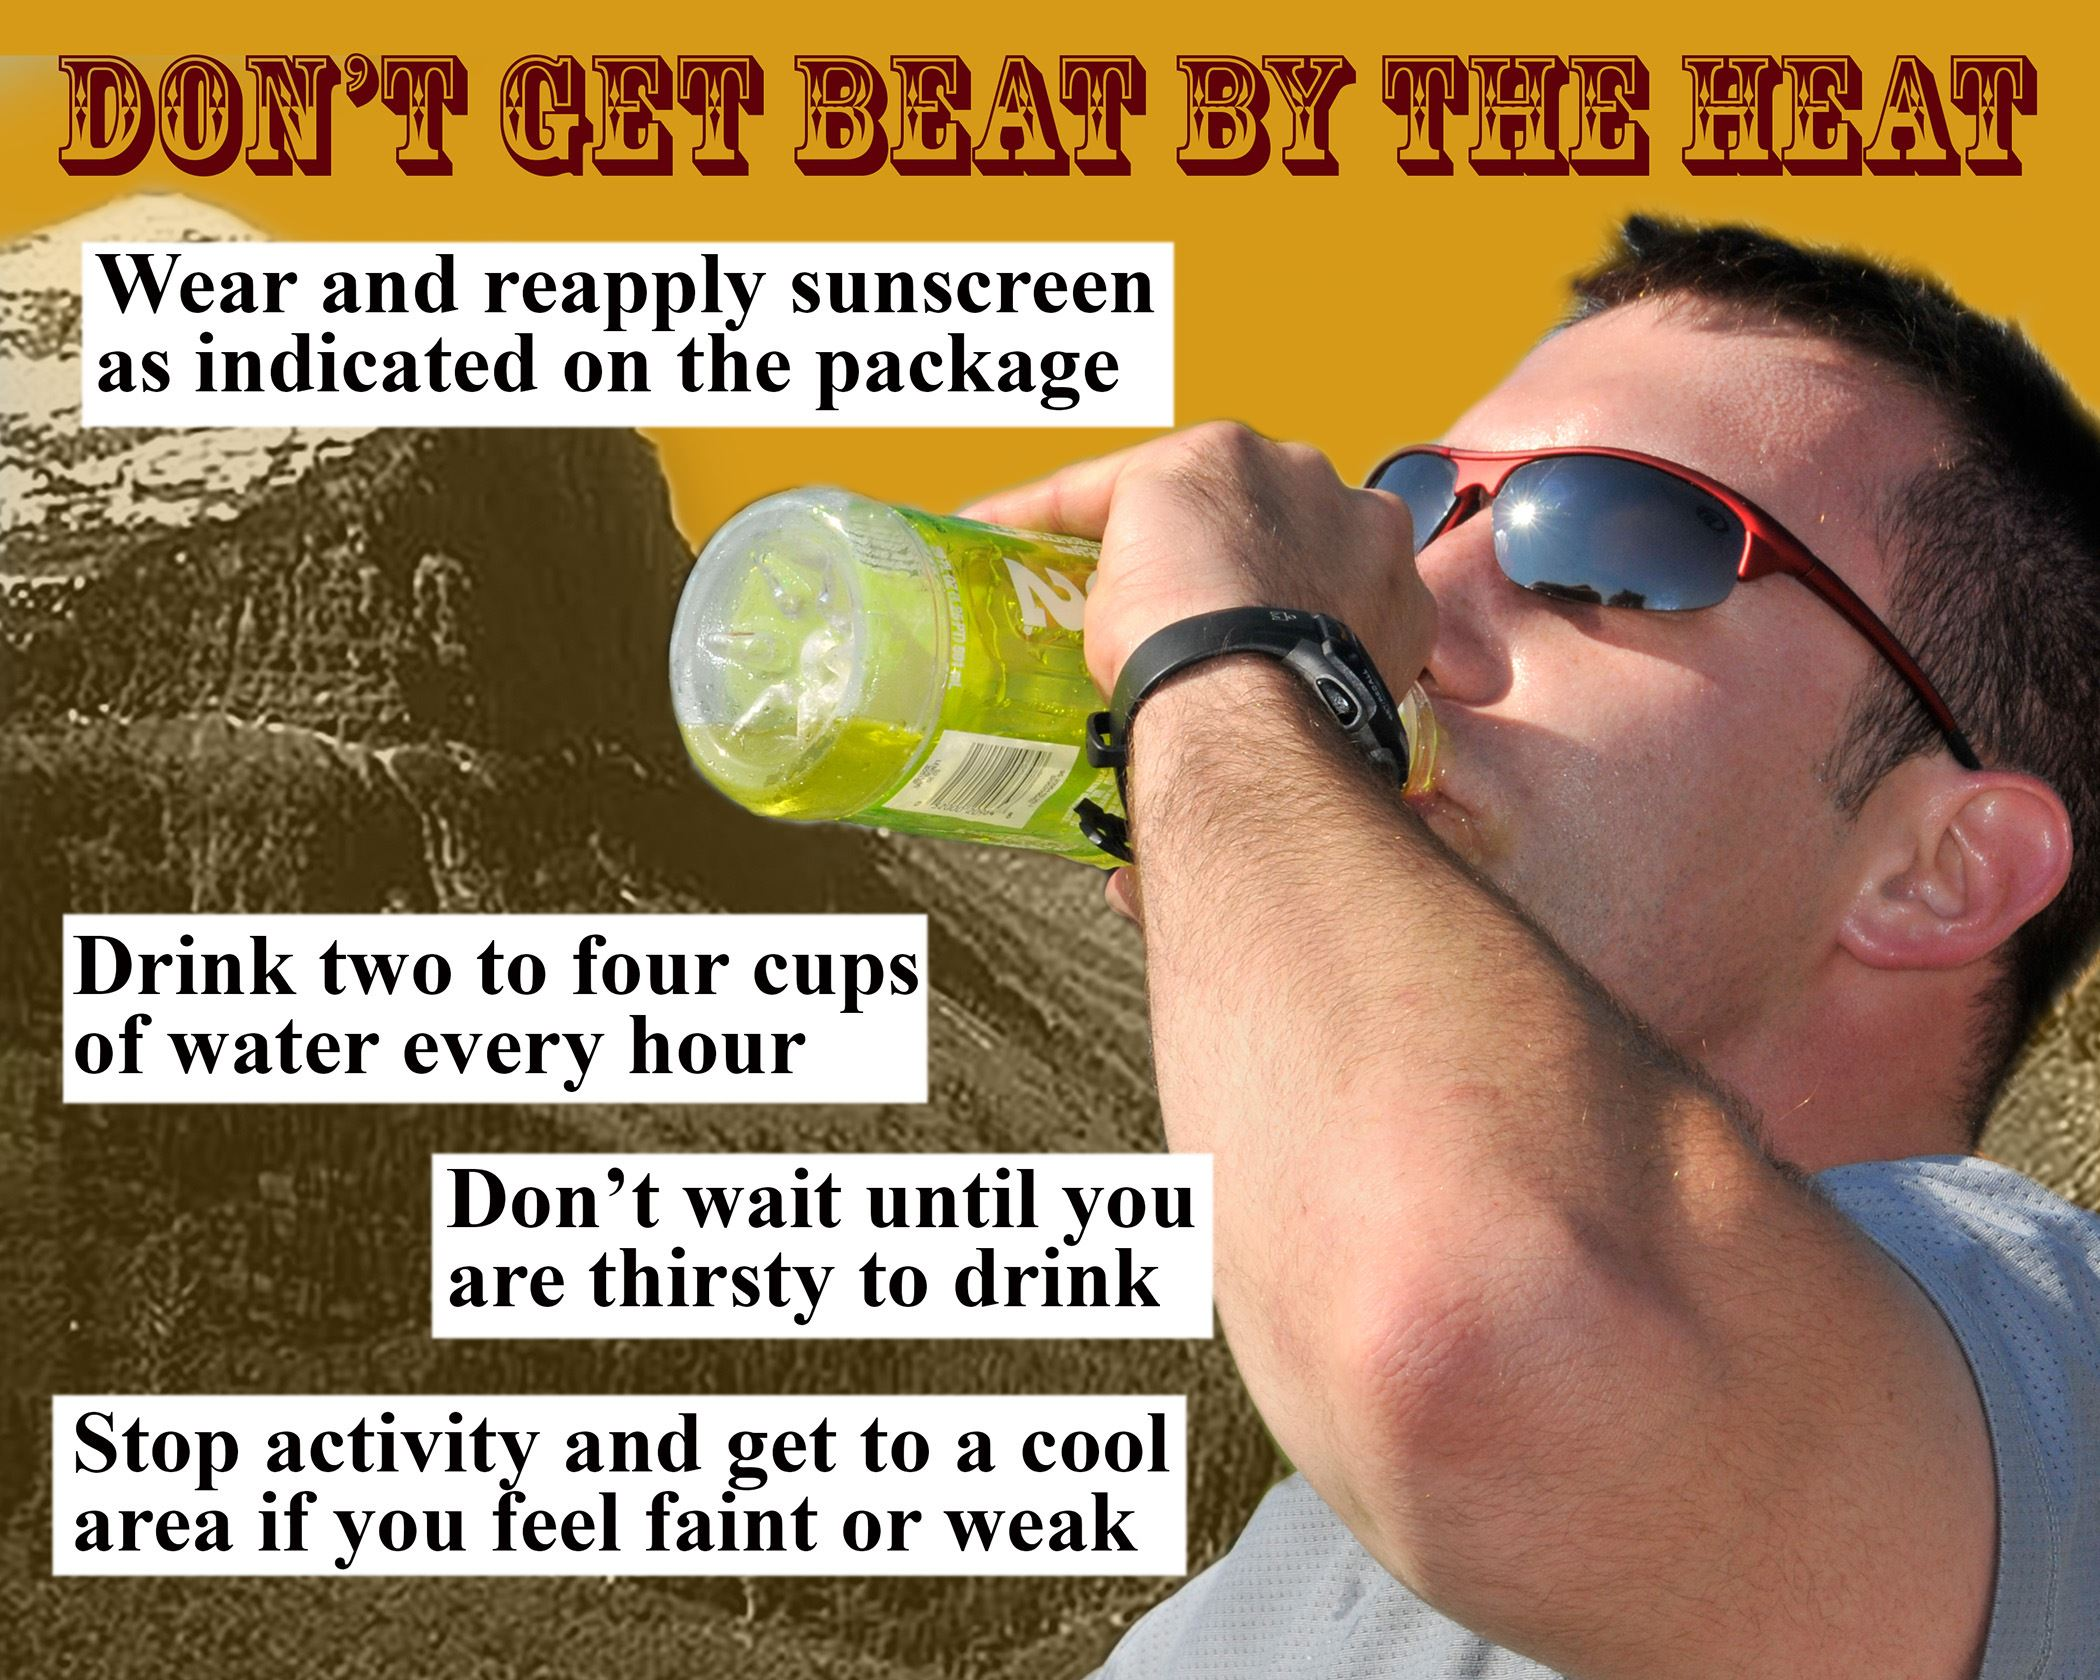 image of a man drinking water and displaying summer heat tips